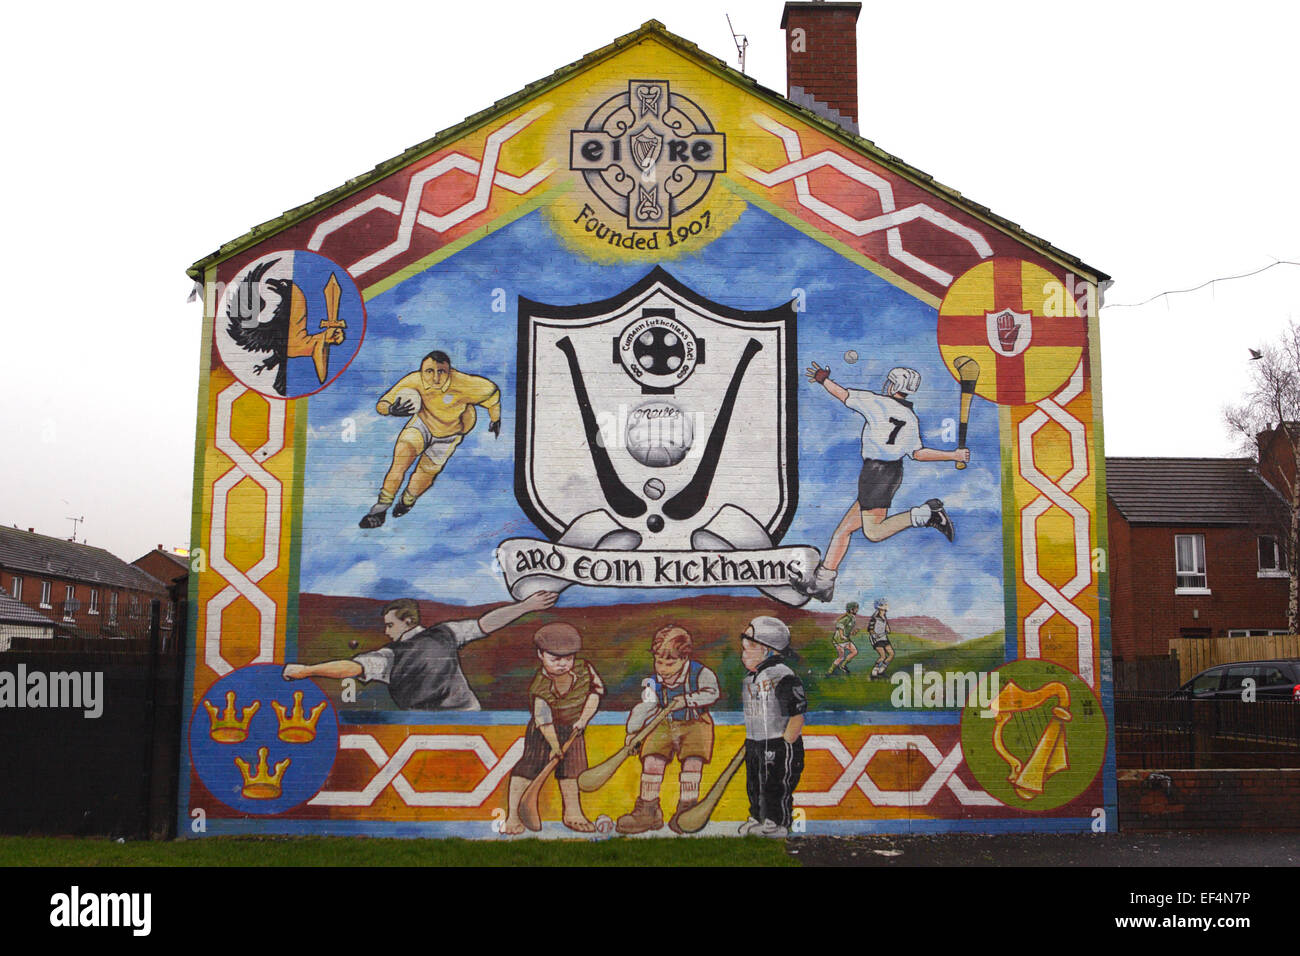 A new mural in the Ardoyne area of the Crumlin Road in North Belfast, Wednesday, Feb 3rd, 2010. The Ardoyne is one - Stock Image